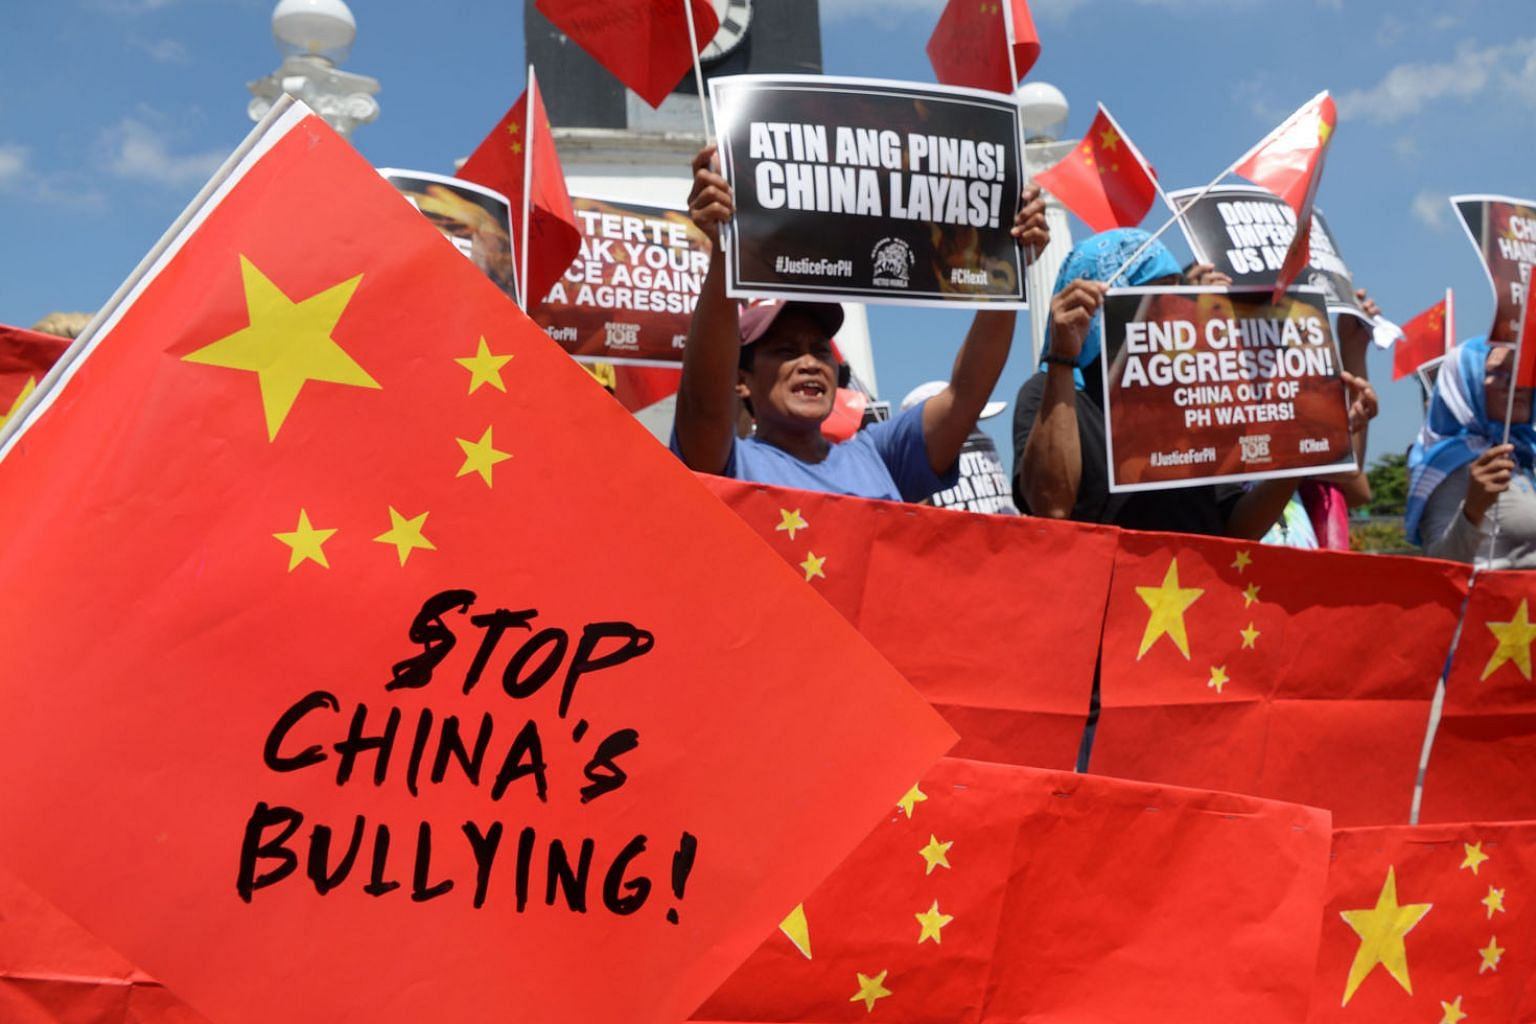 Anti-China activists at a protest in Manila last month after a suspected Chinese militia vessel collided with a Philippine fishing boat in the contested South China Sea. Philippine President Rodrigo Duterte has of late come under growing public press